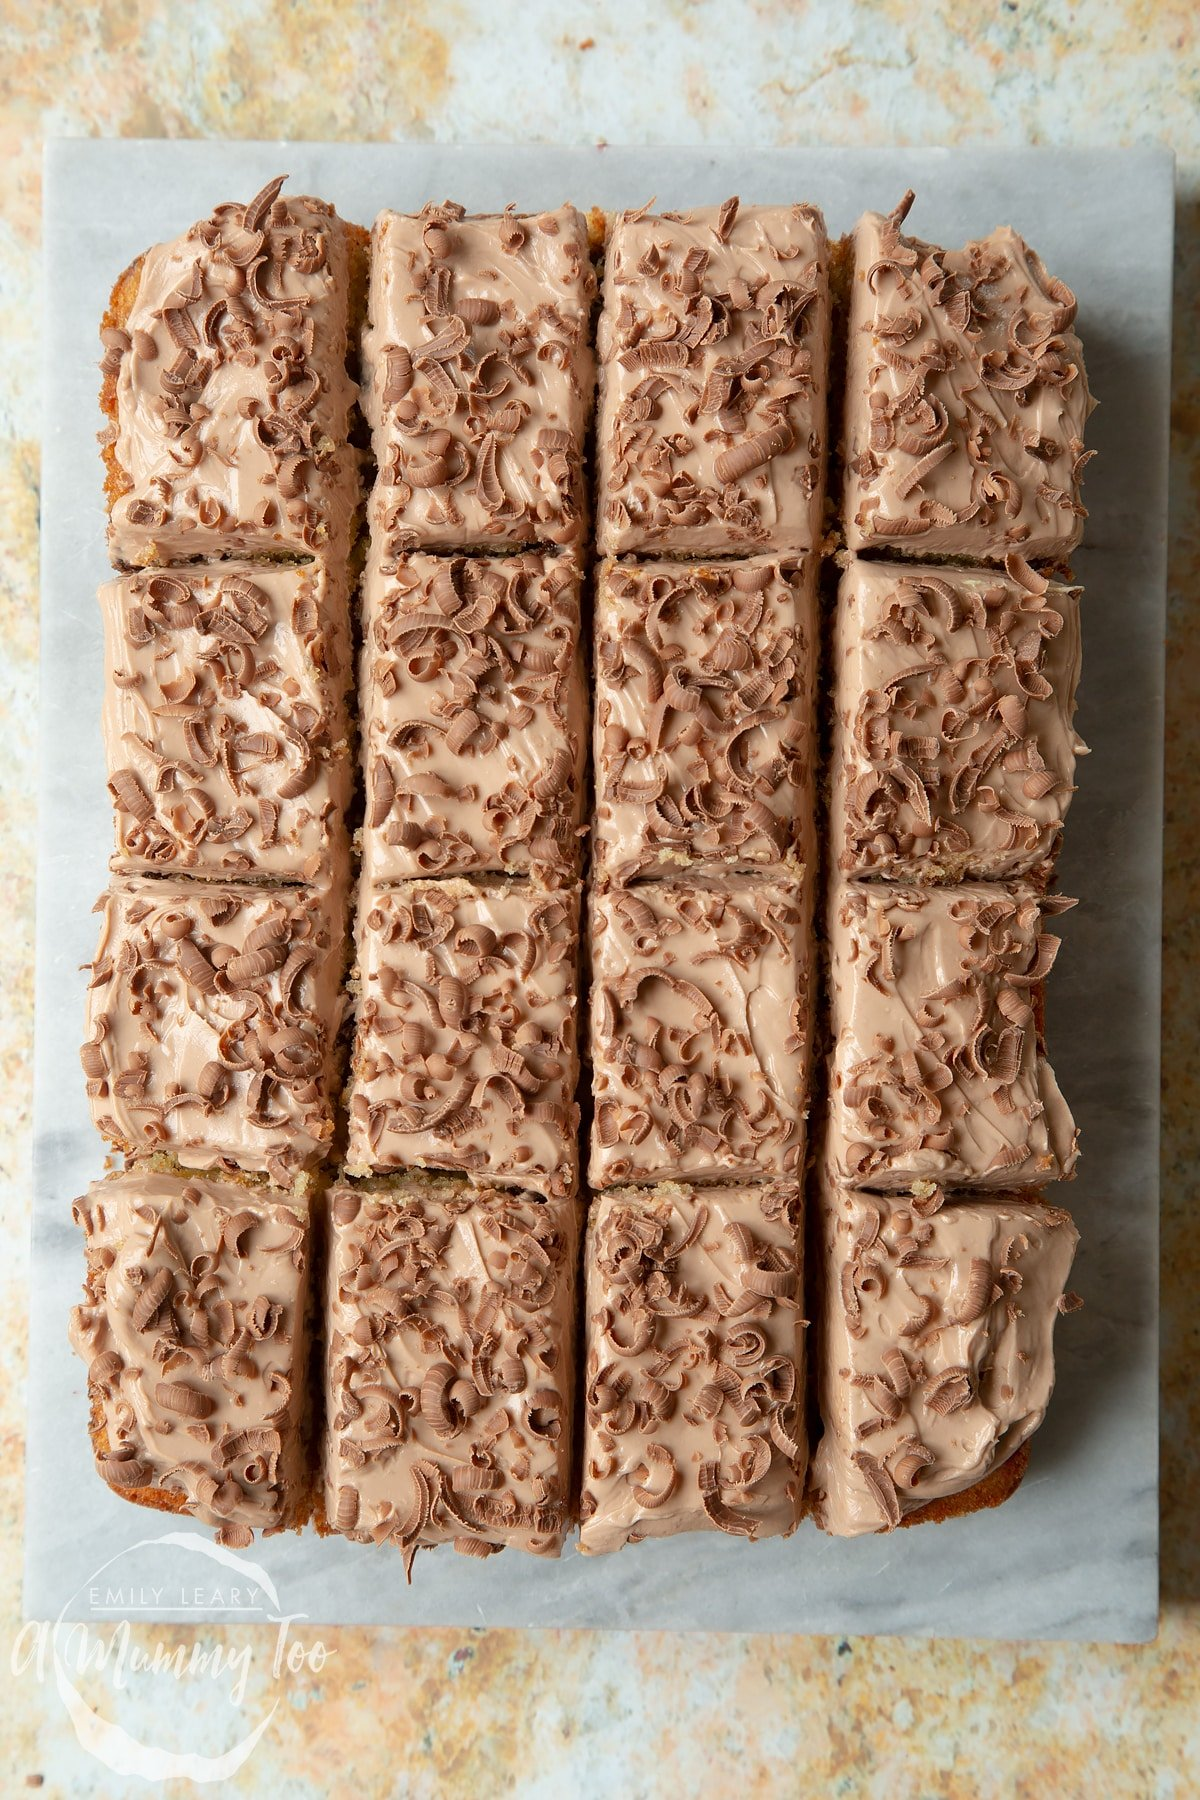 Freshly decorated chocolate chip tray bake on a marble board. The cake is cut into 16 pieces.